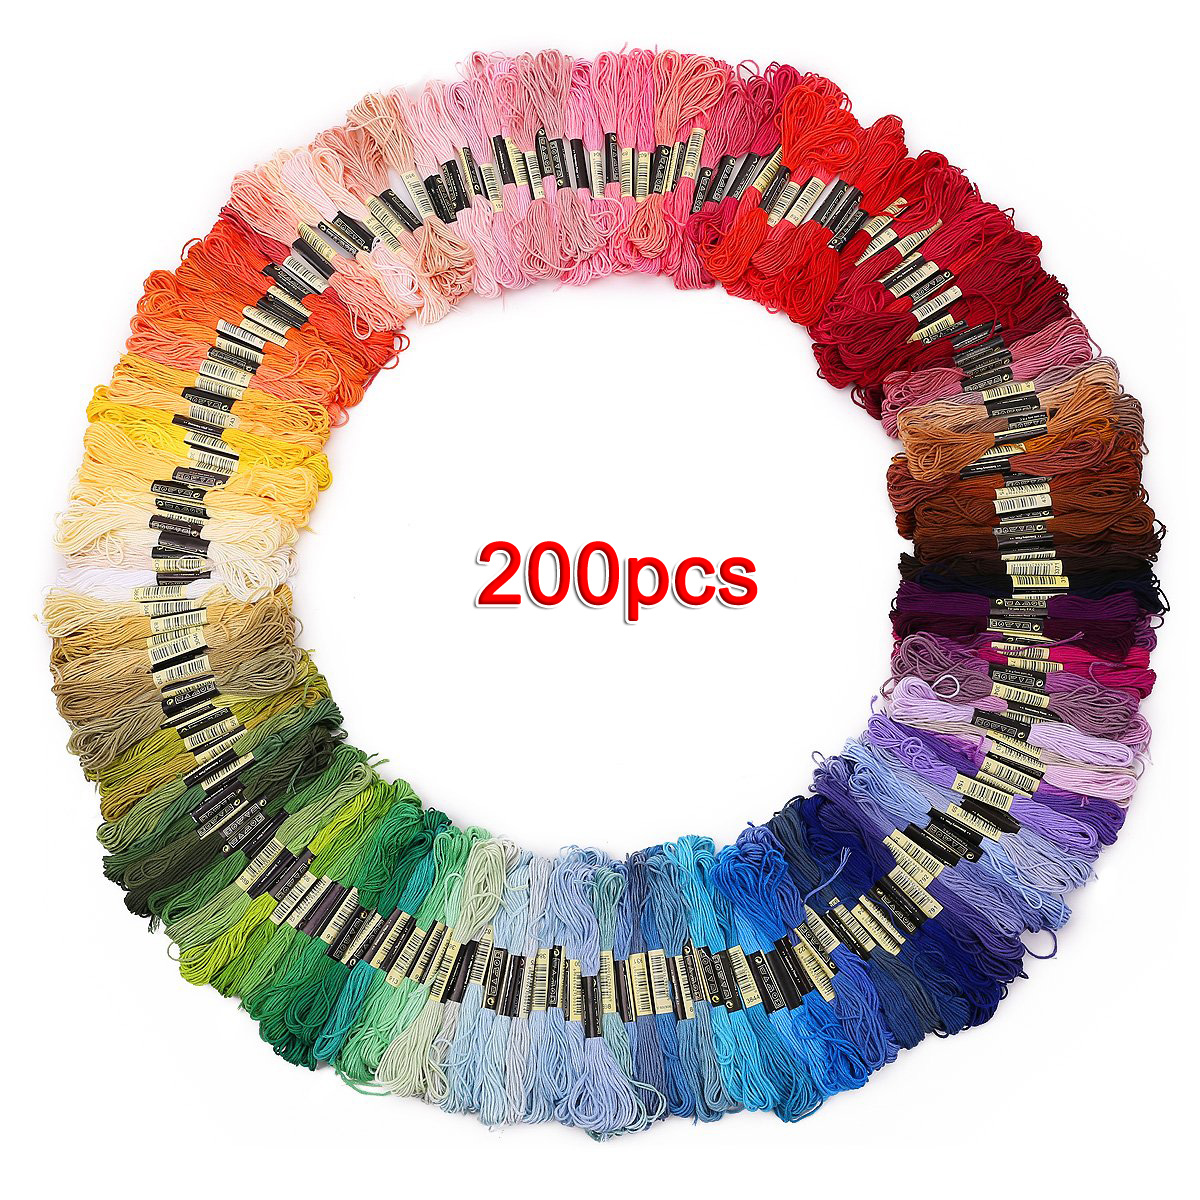 LHBL 200 skeins of multicolored yarn for cross stitch embroidery Crocheting